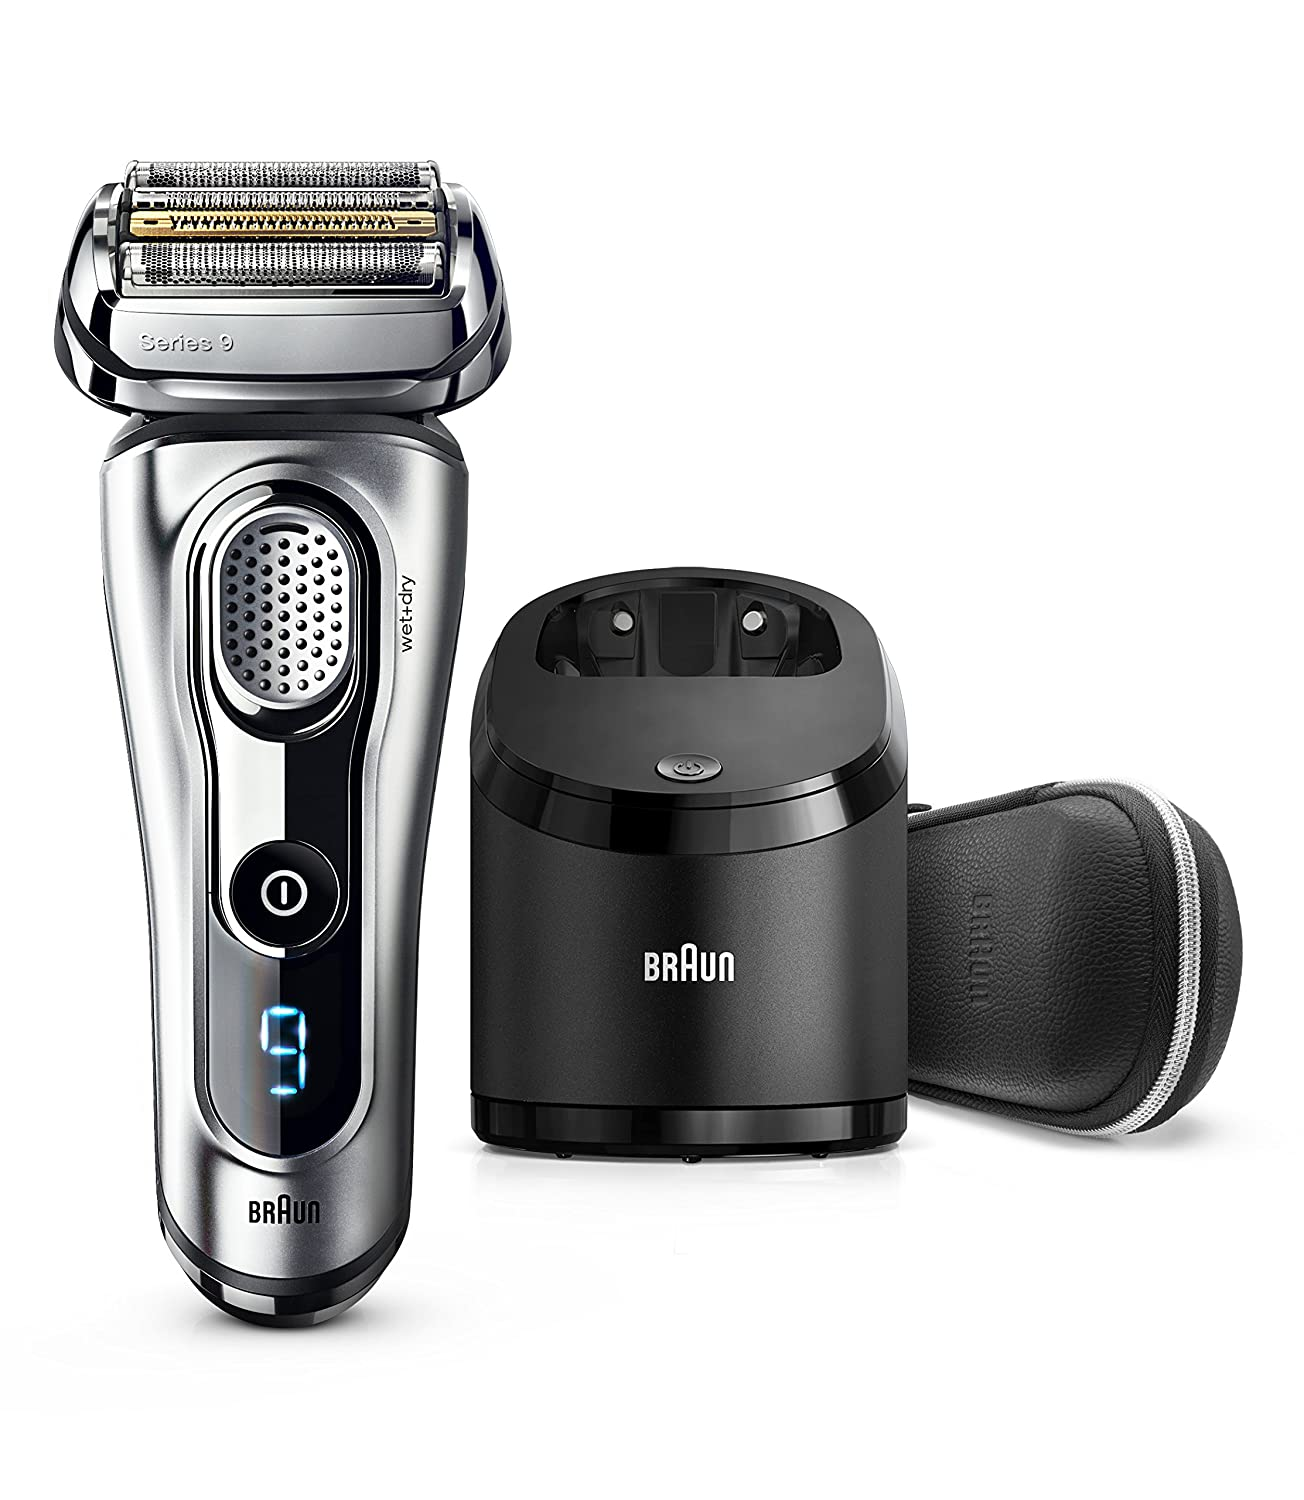 Best Foil Shaver in 2020: Reviews & Buying Guide 10